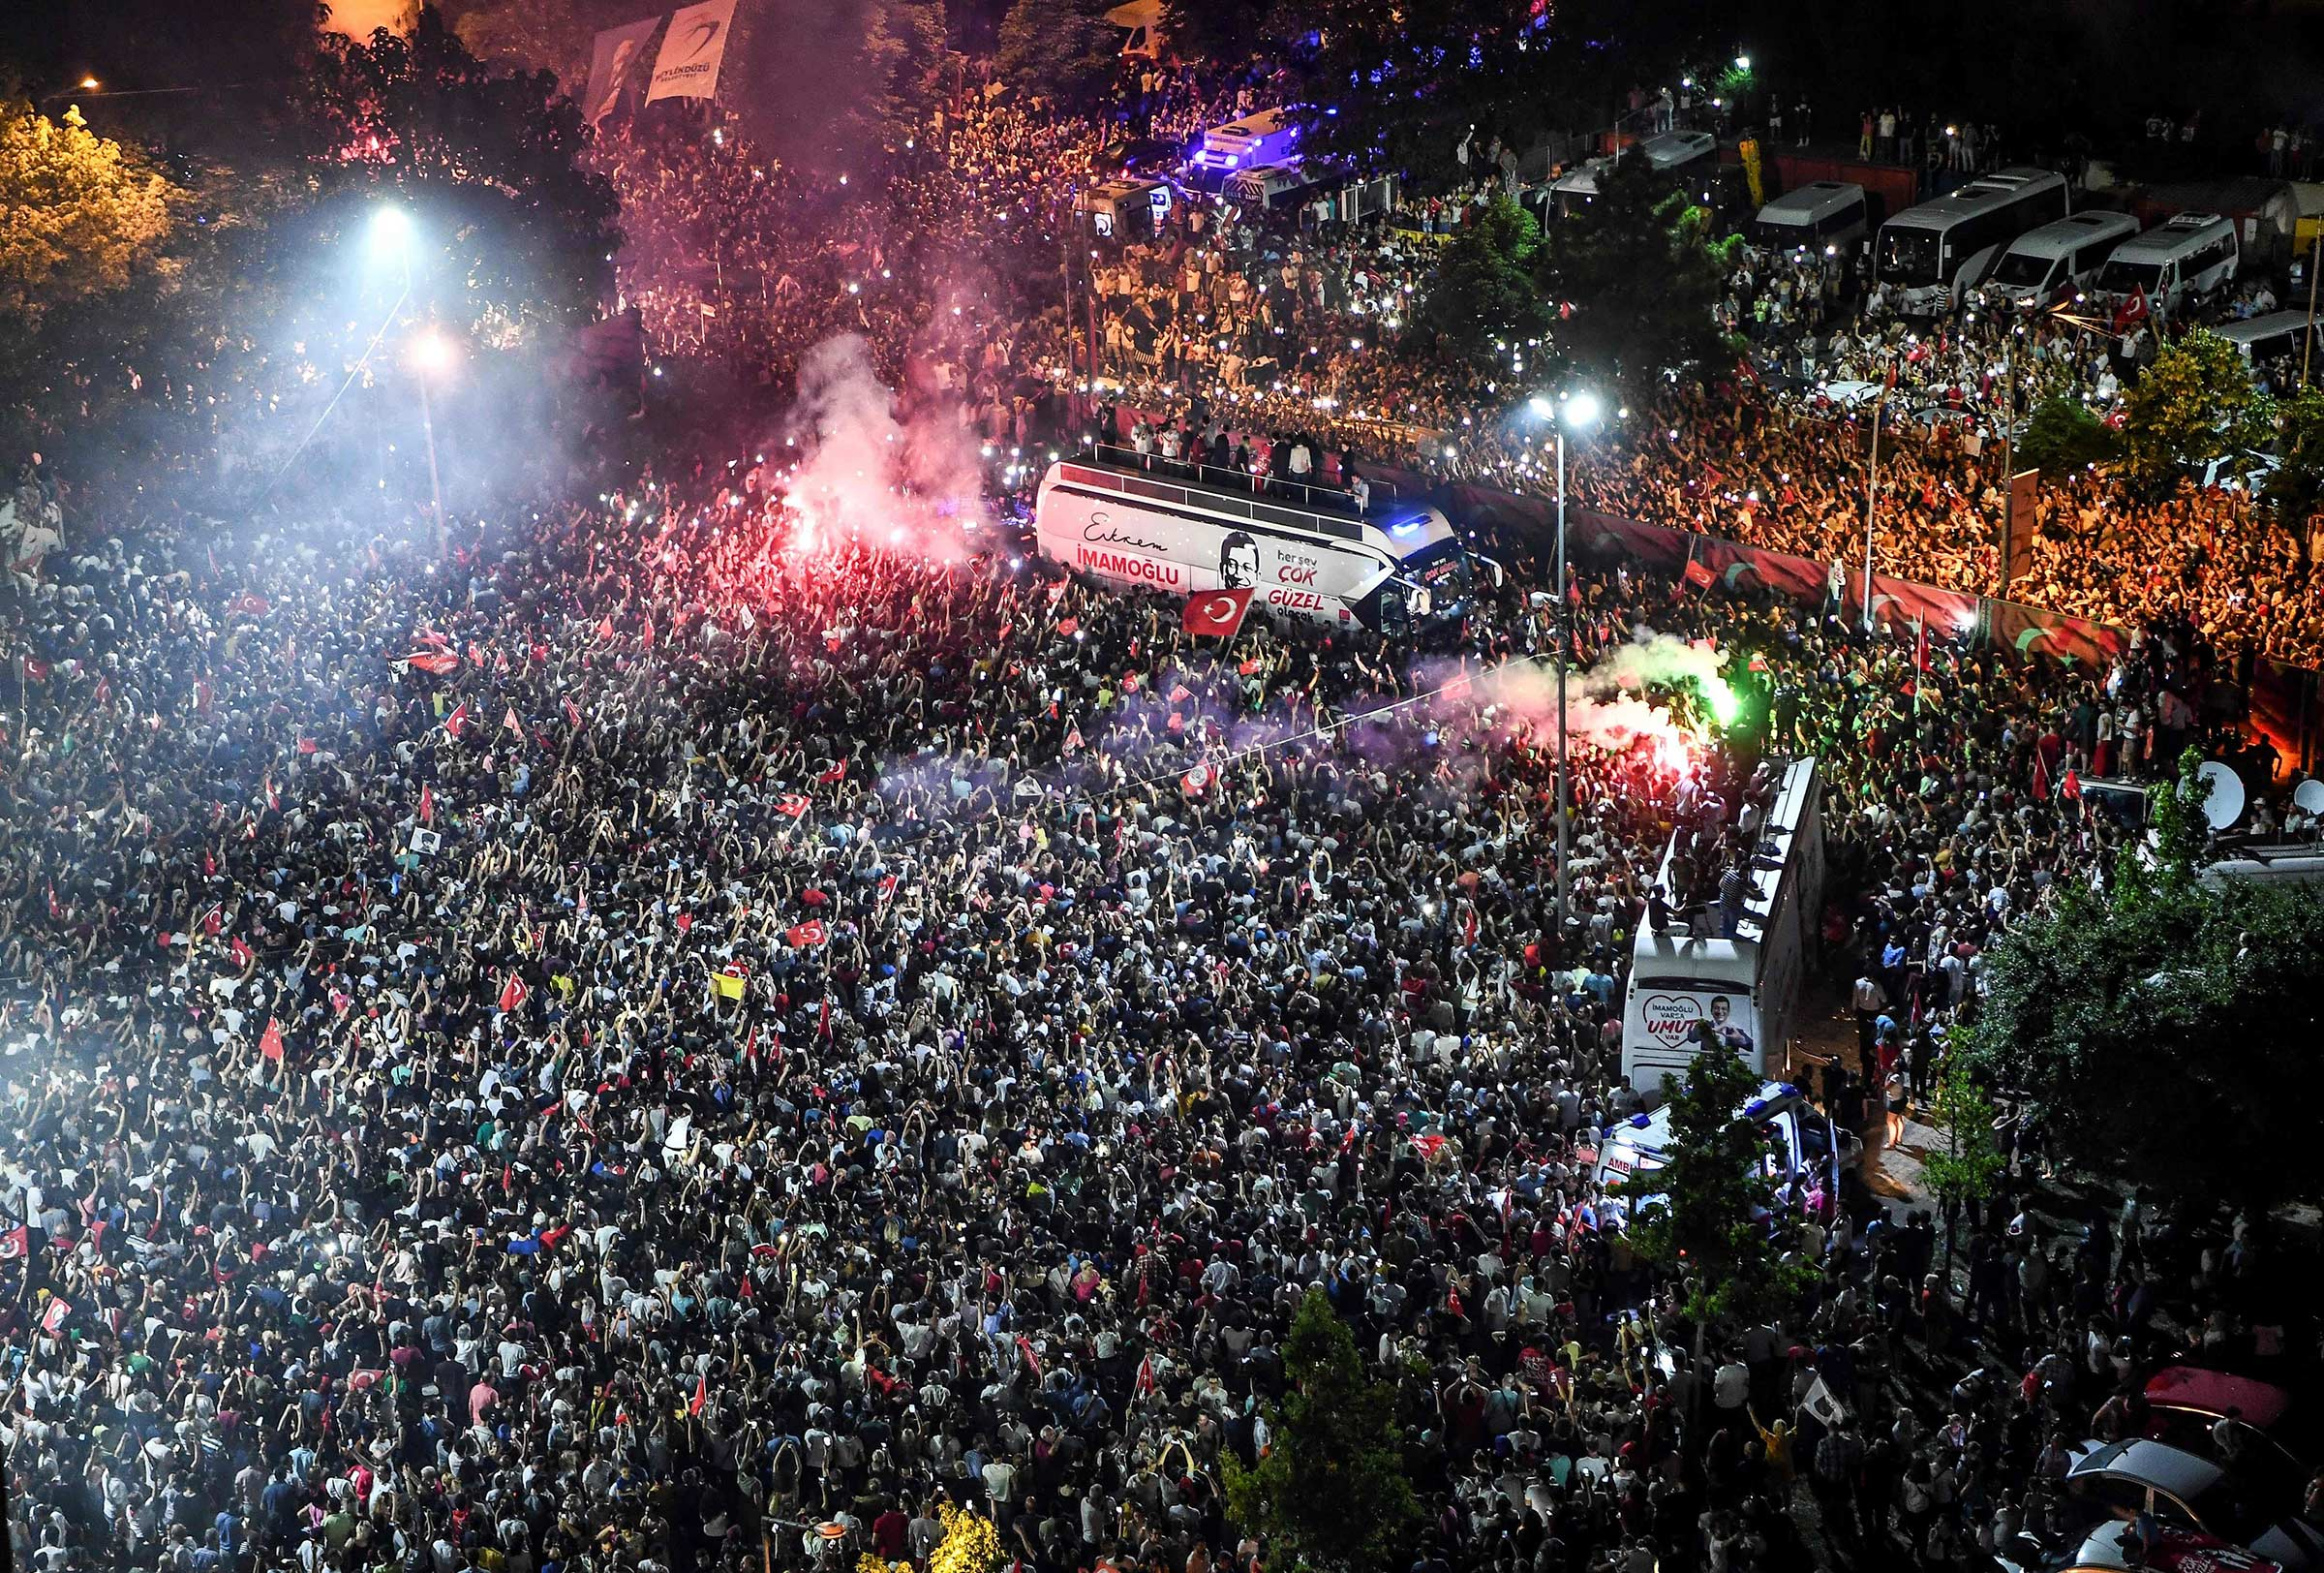 Istanbul citizens gather to celebrate after the Republican People's Party (CHP) candidate Ekrem Imamoglu won Istanbul's mayoral re-run elections on June 23.